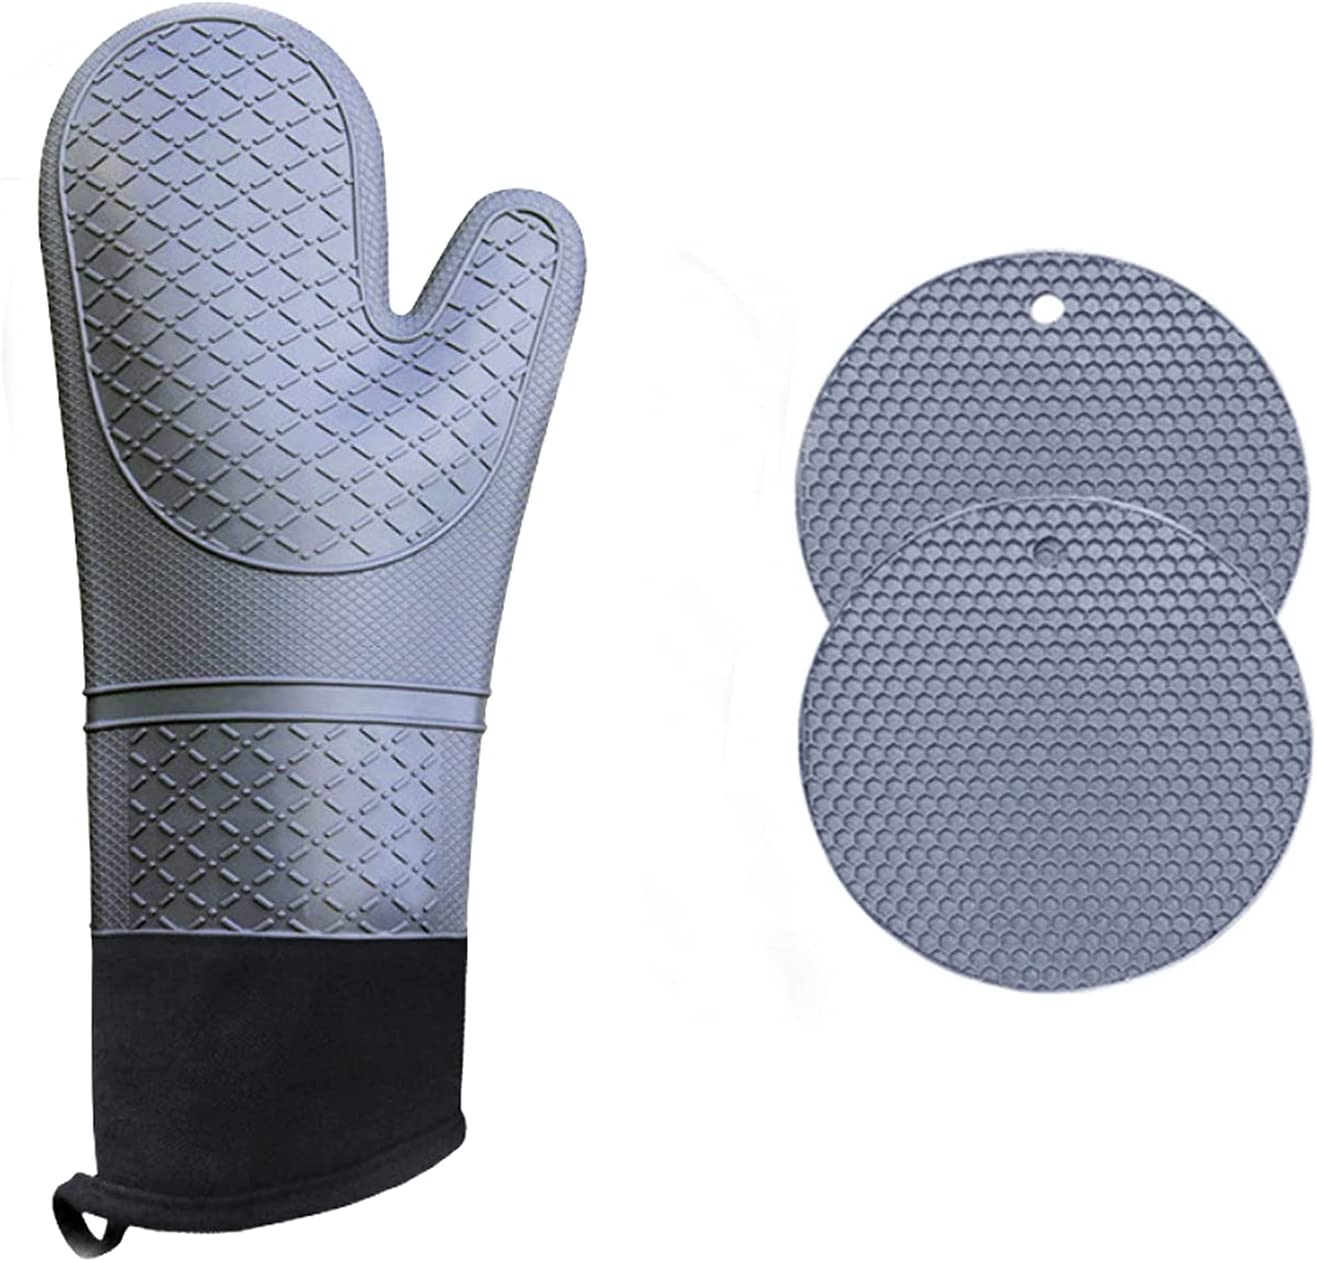 Air Fryer Toaster Oven Accessories,Oven Mitts and Pot Holders, 4-Piece Set,Non-Slip Textured Grip,Grey